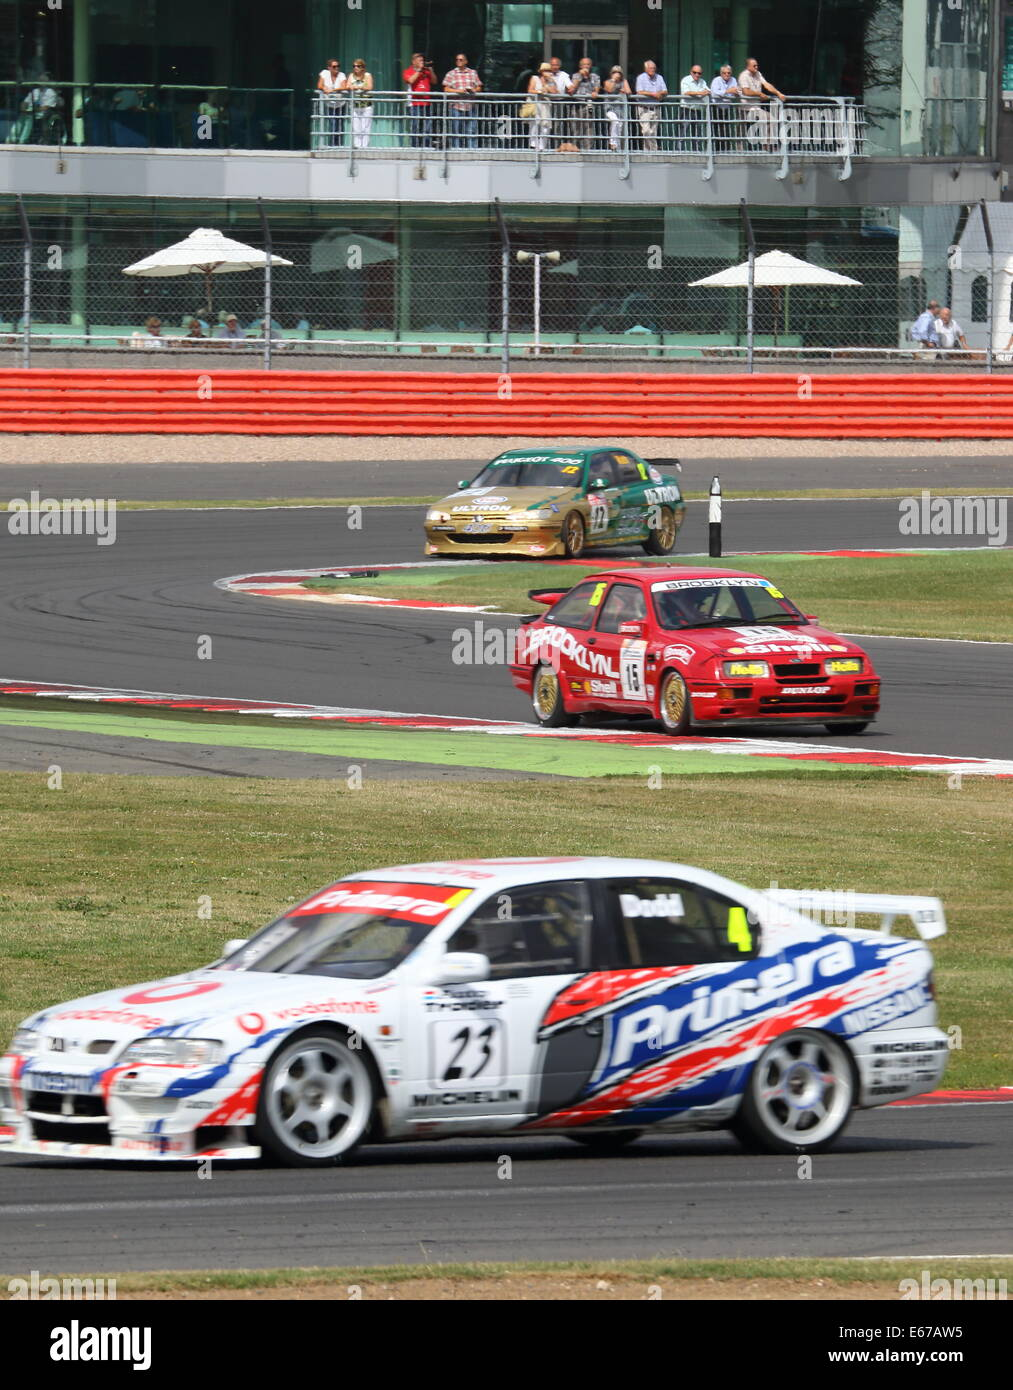 British Touring Cars - Stock Image